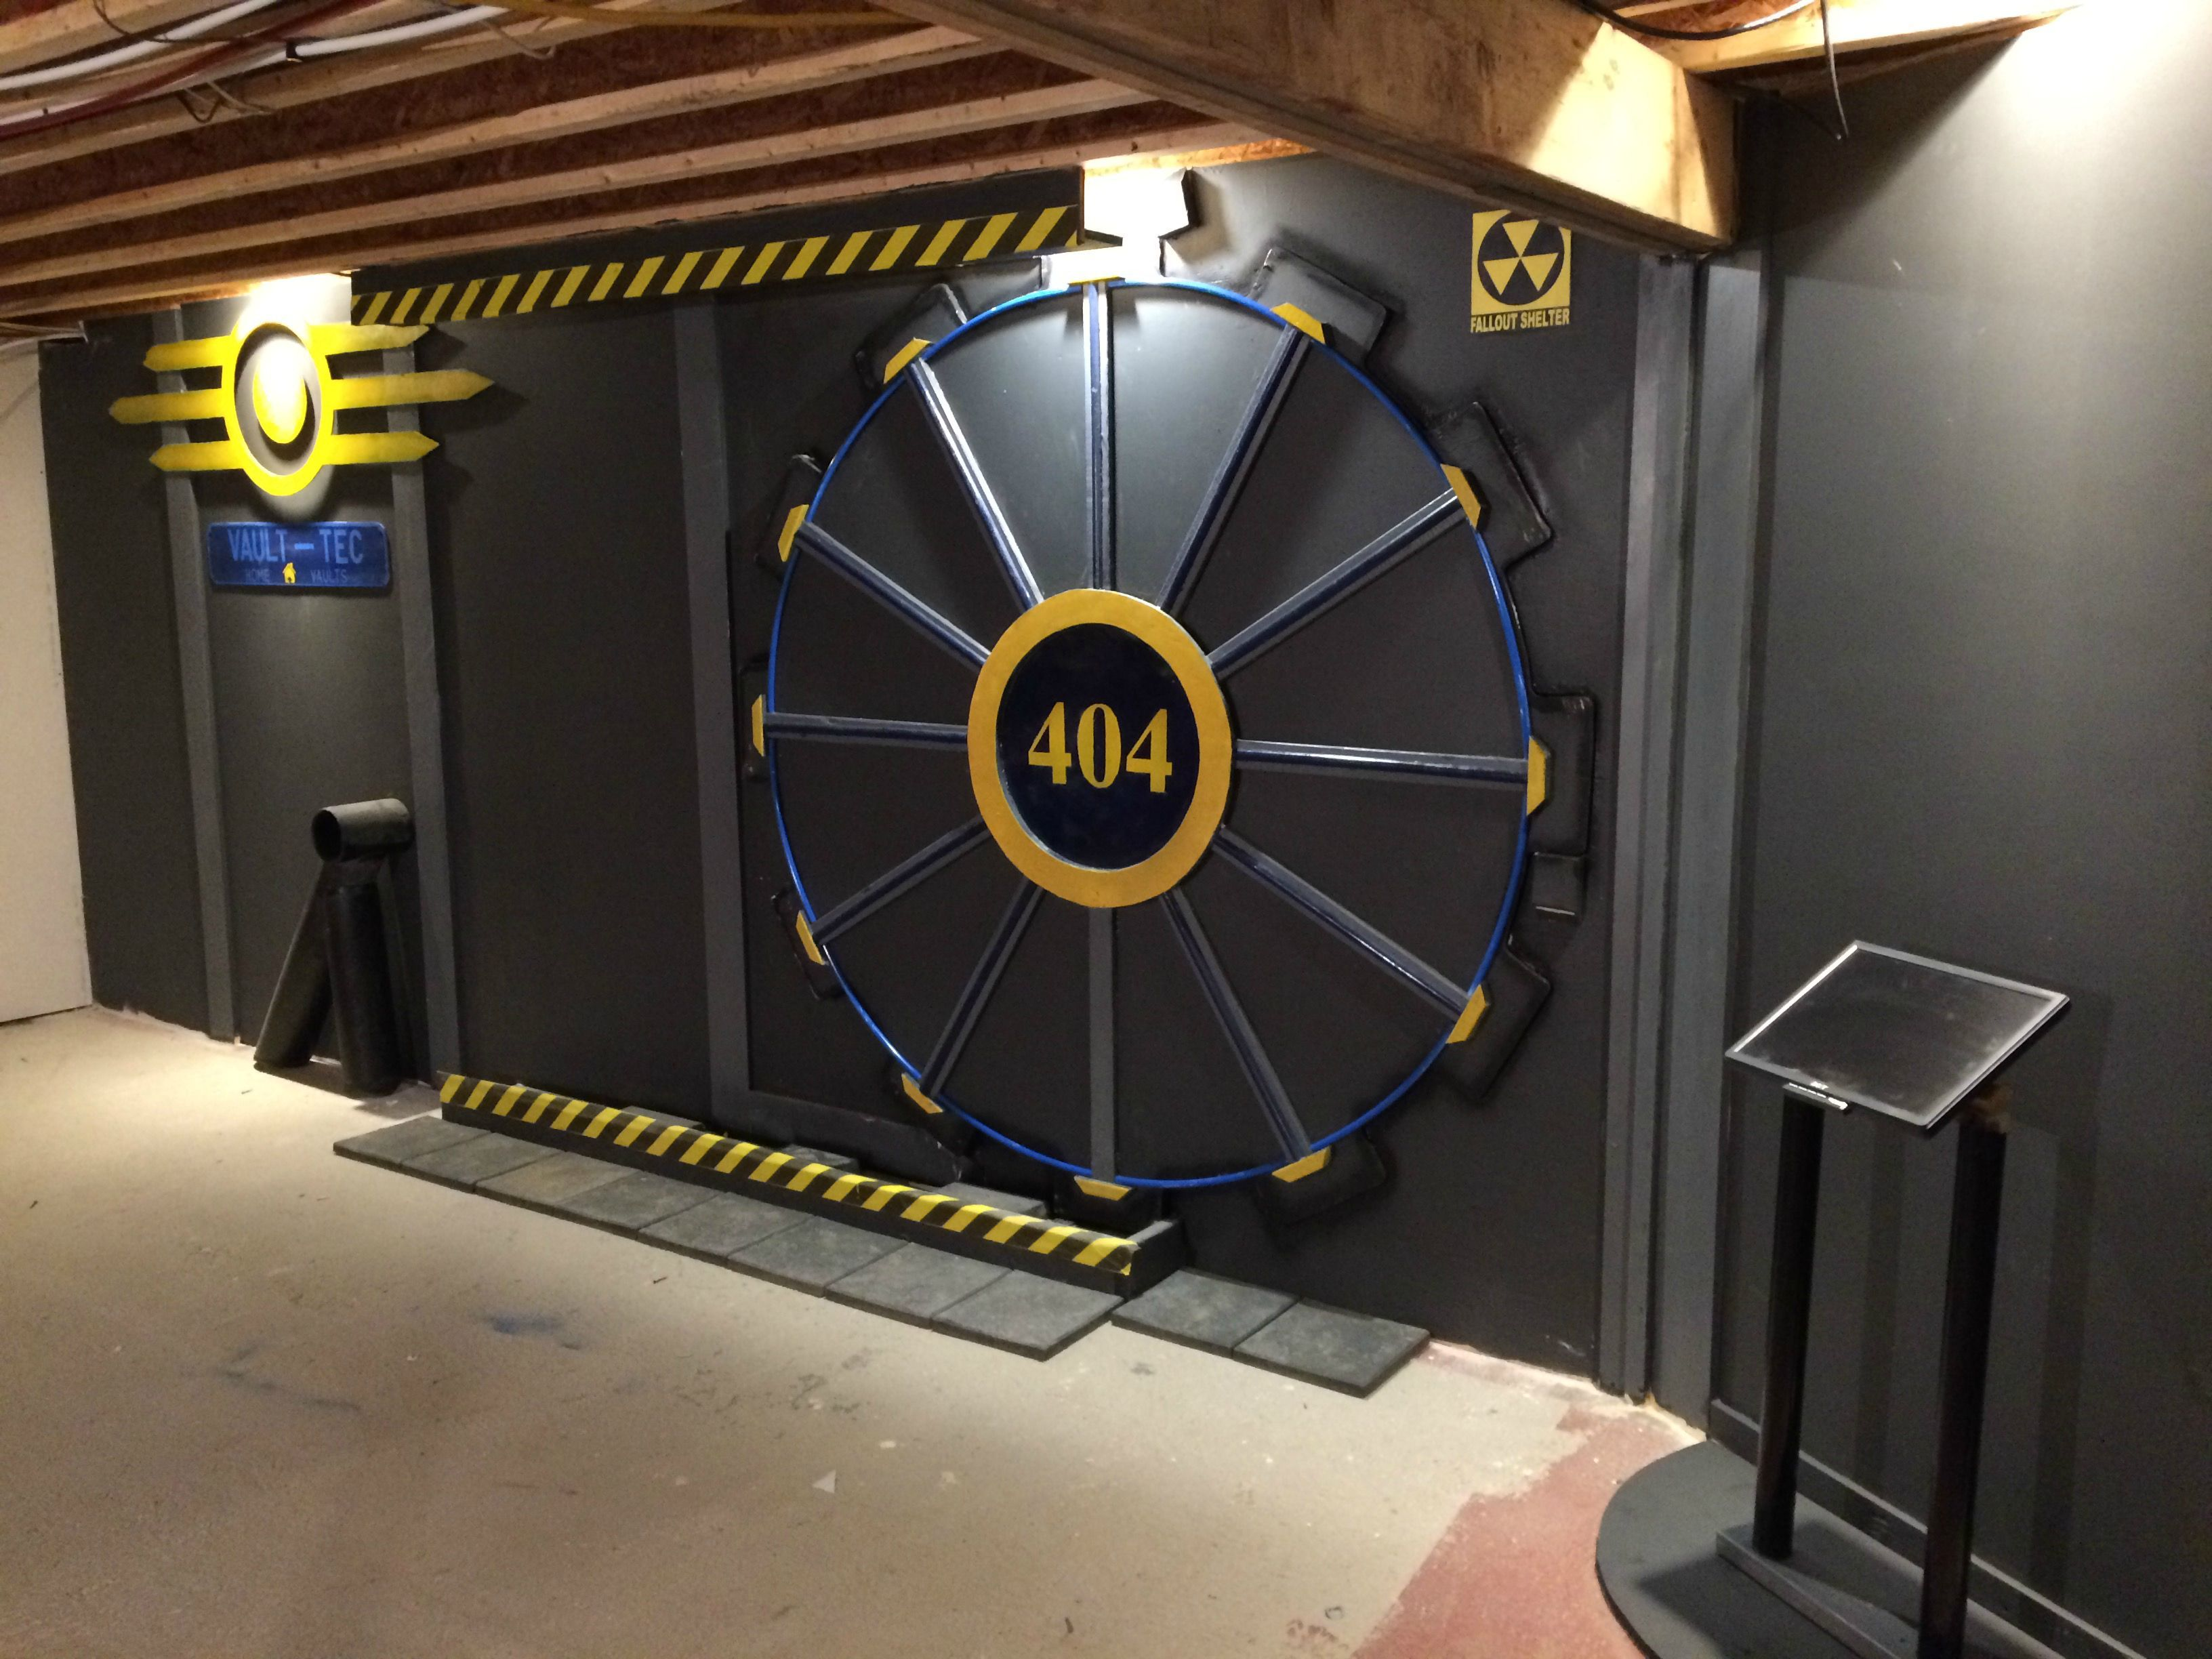 Fallout 4 themed gaming room with vault tec door my wishlist fallout 4 themed gaming room with vault tec door solutioingenieria Image collections